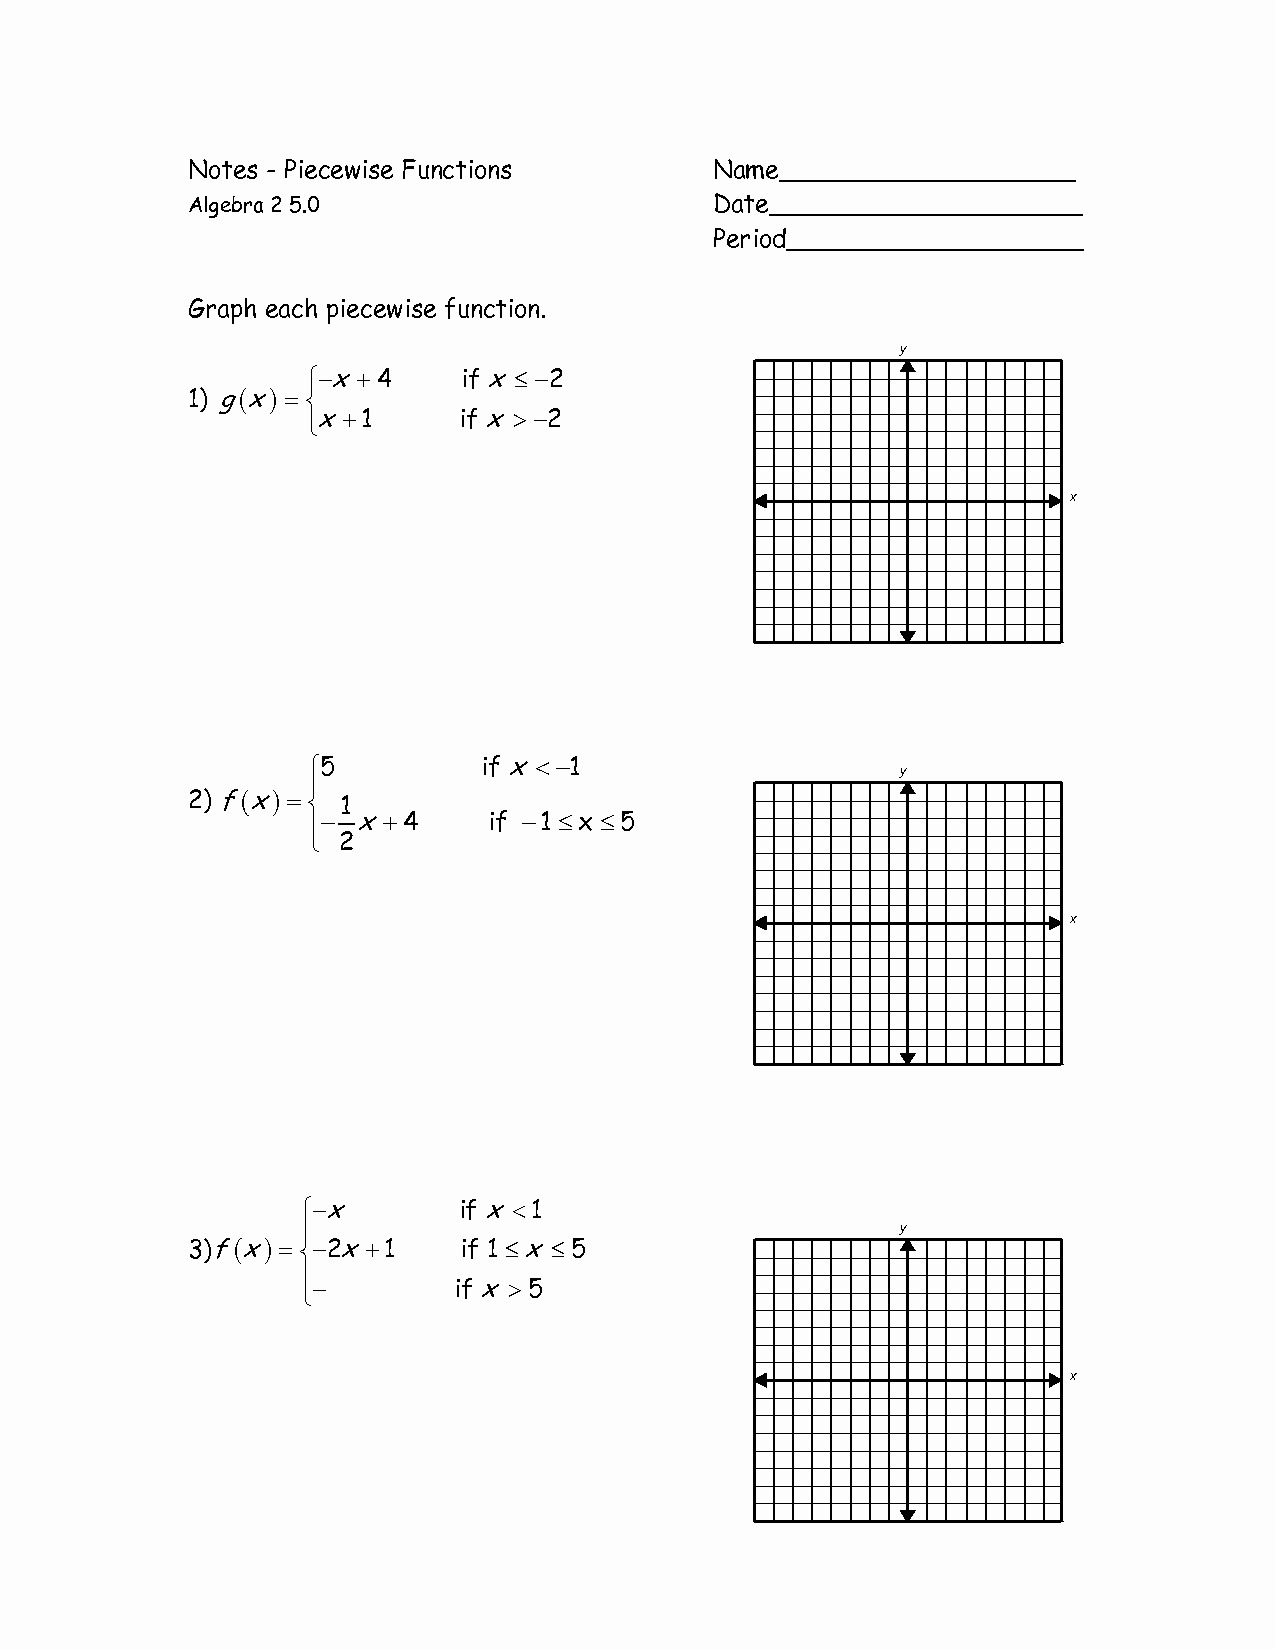 Evaluating Piecewise Functions Worksheet Awesome Graphs Of Piecewise Functions Worksheet Google Search